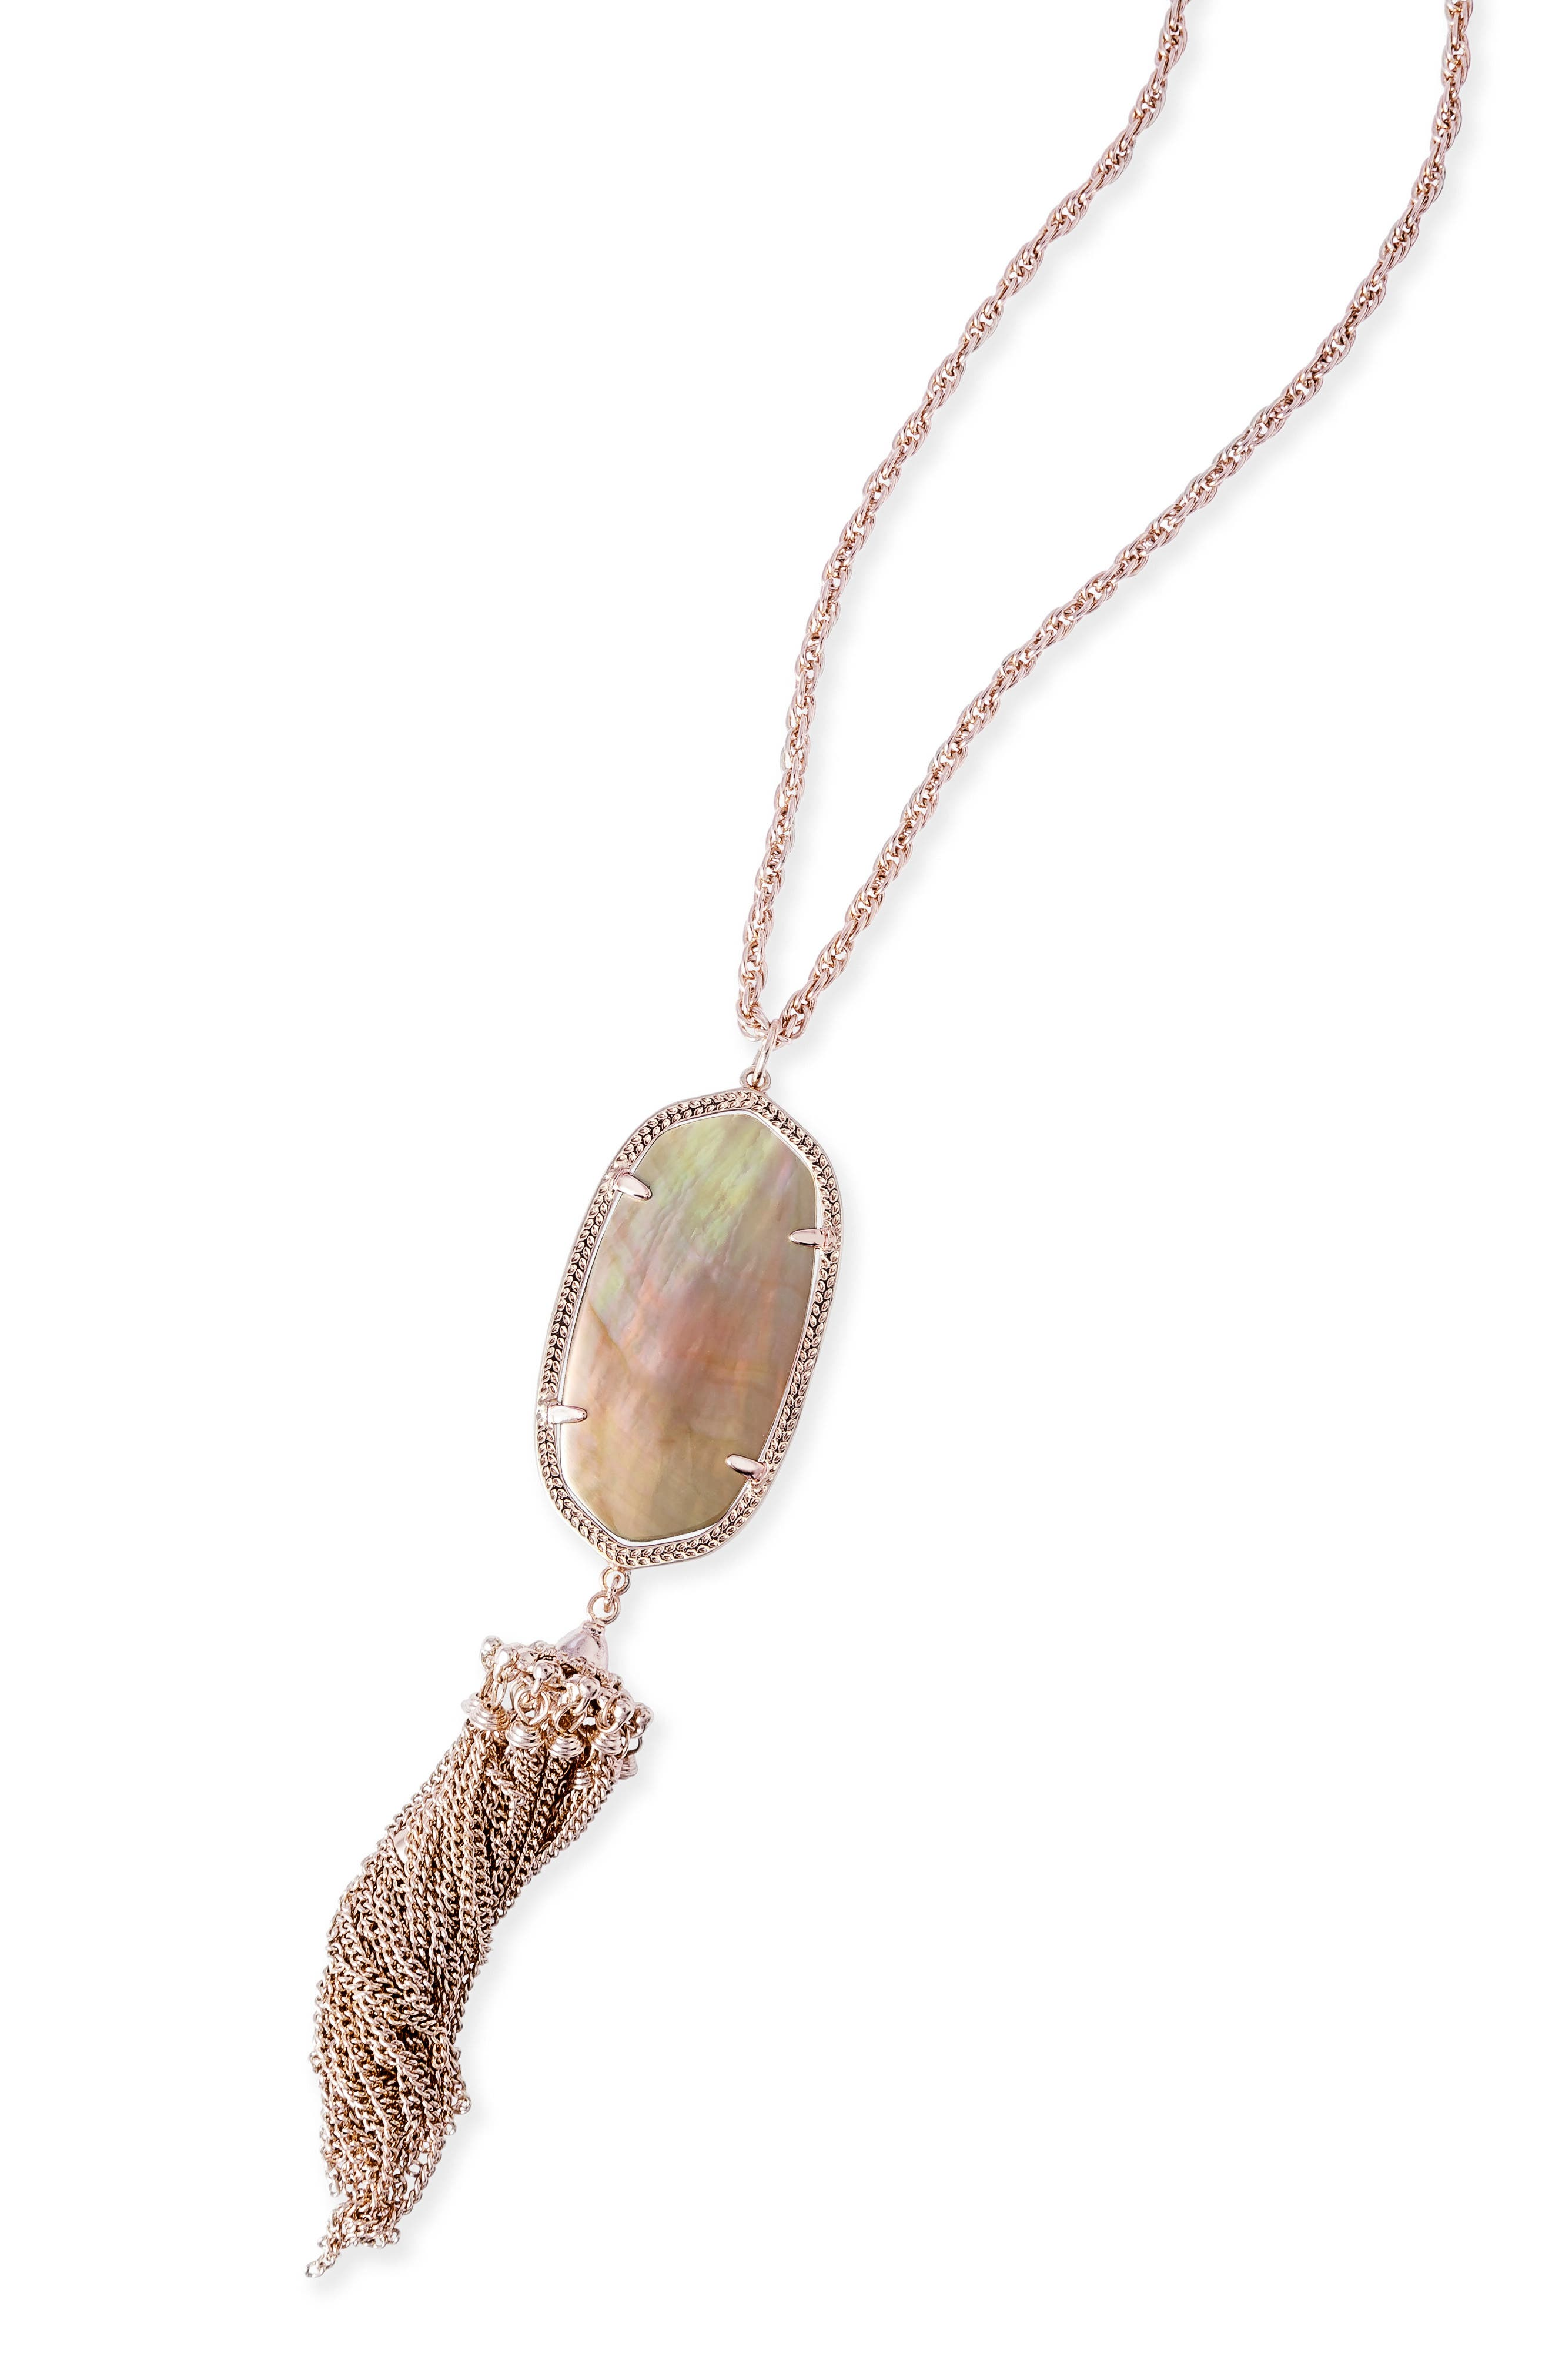 Rayne Stone Tassel Pendant Necklace,                         Main,                         color, Brown Mop/ Rose Gold